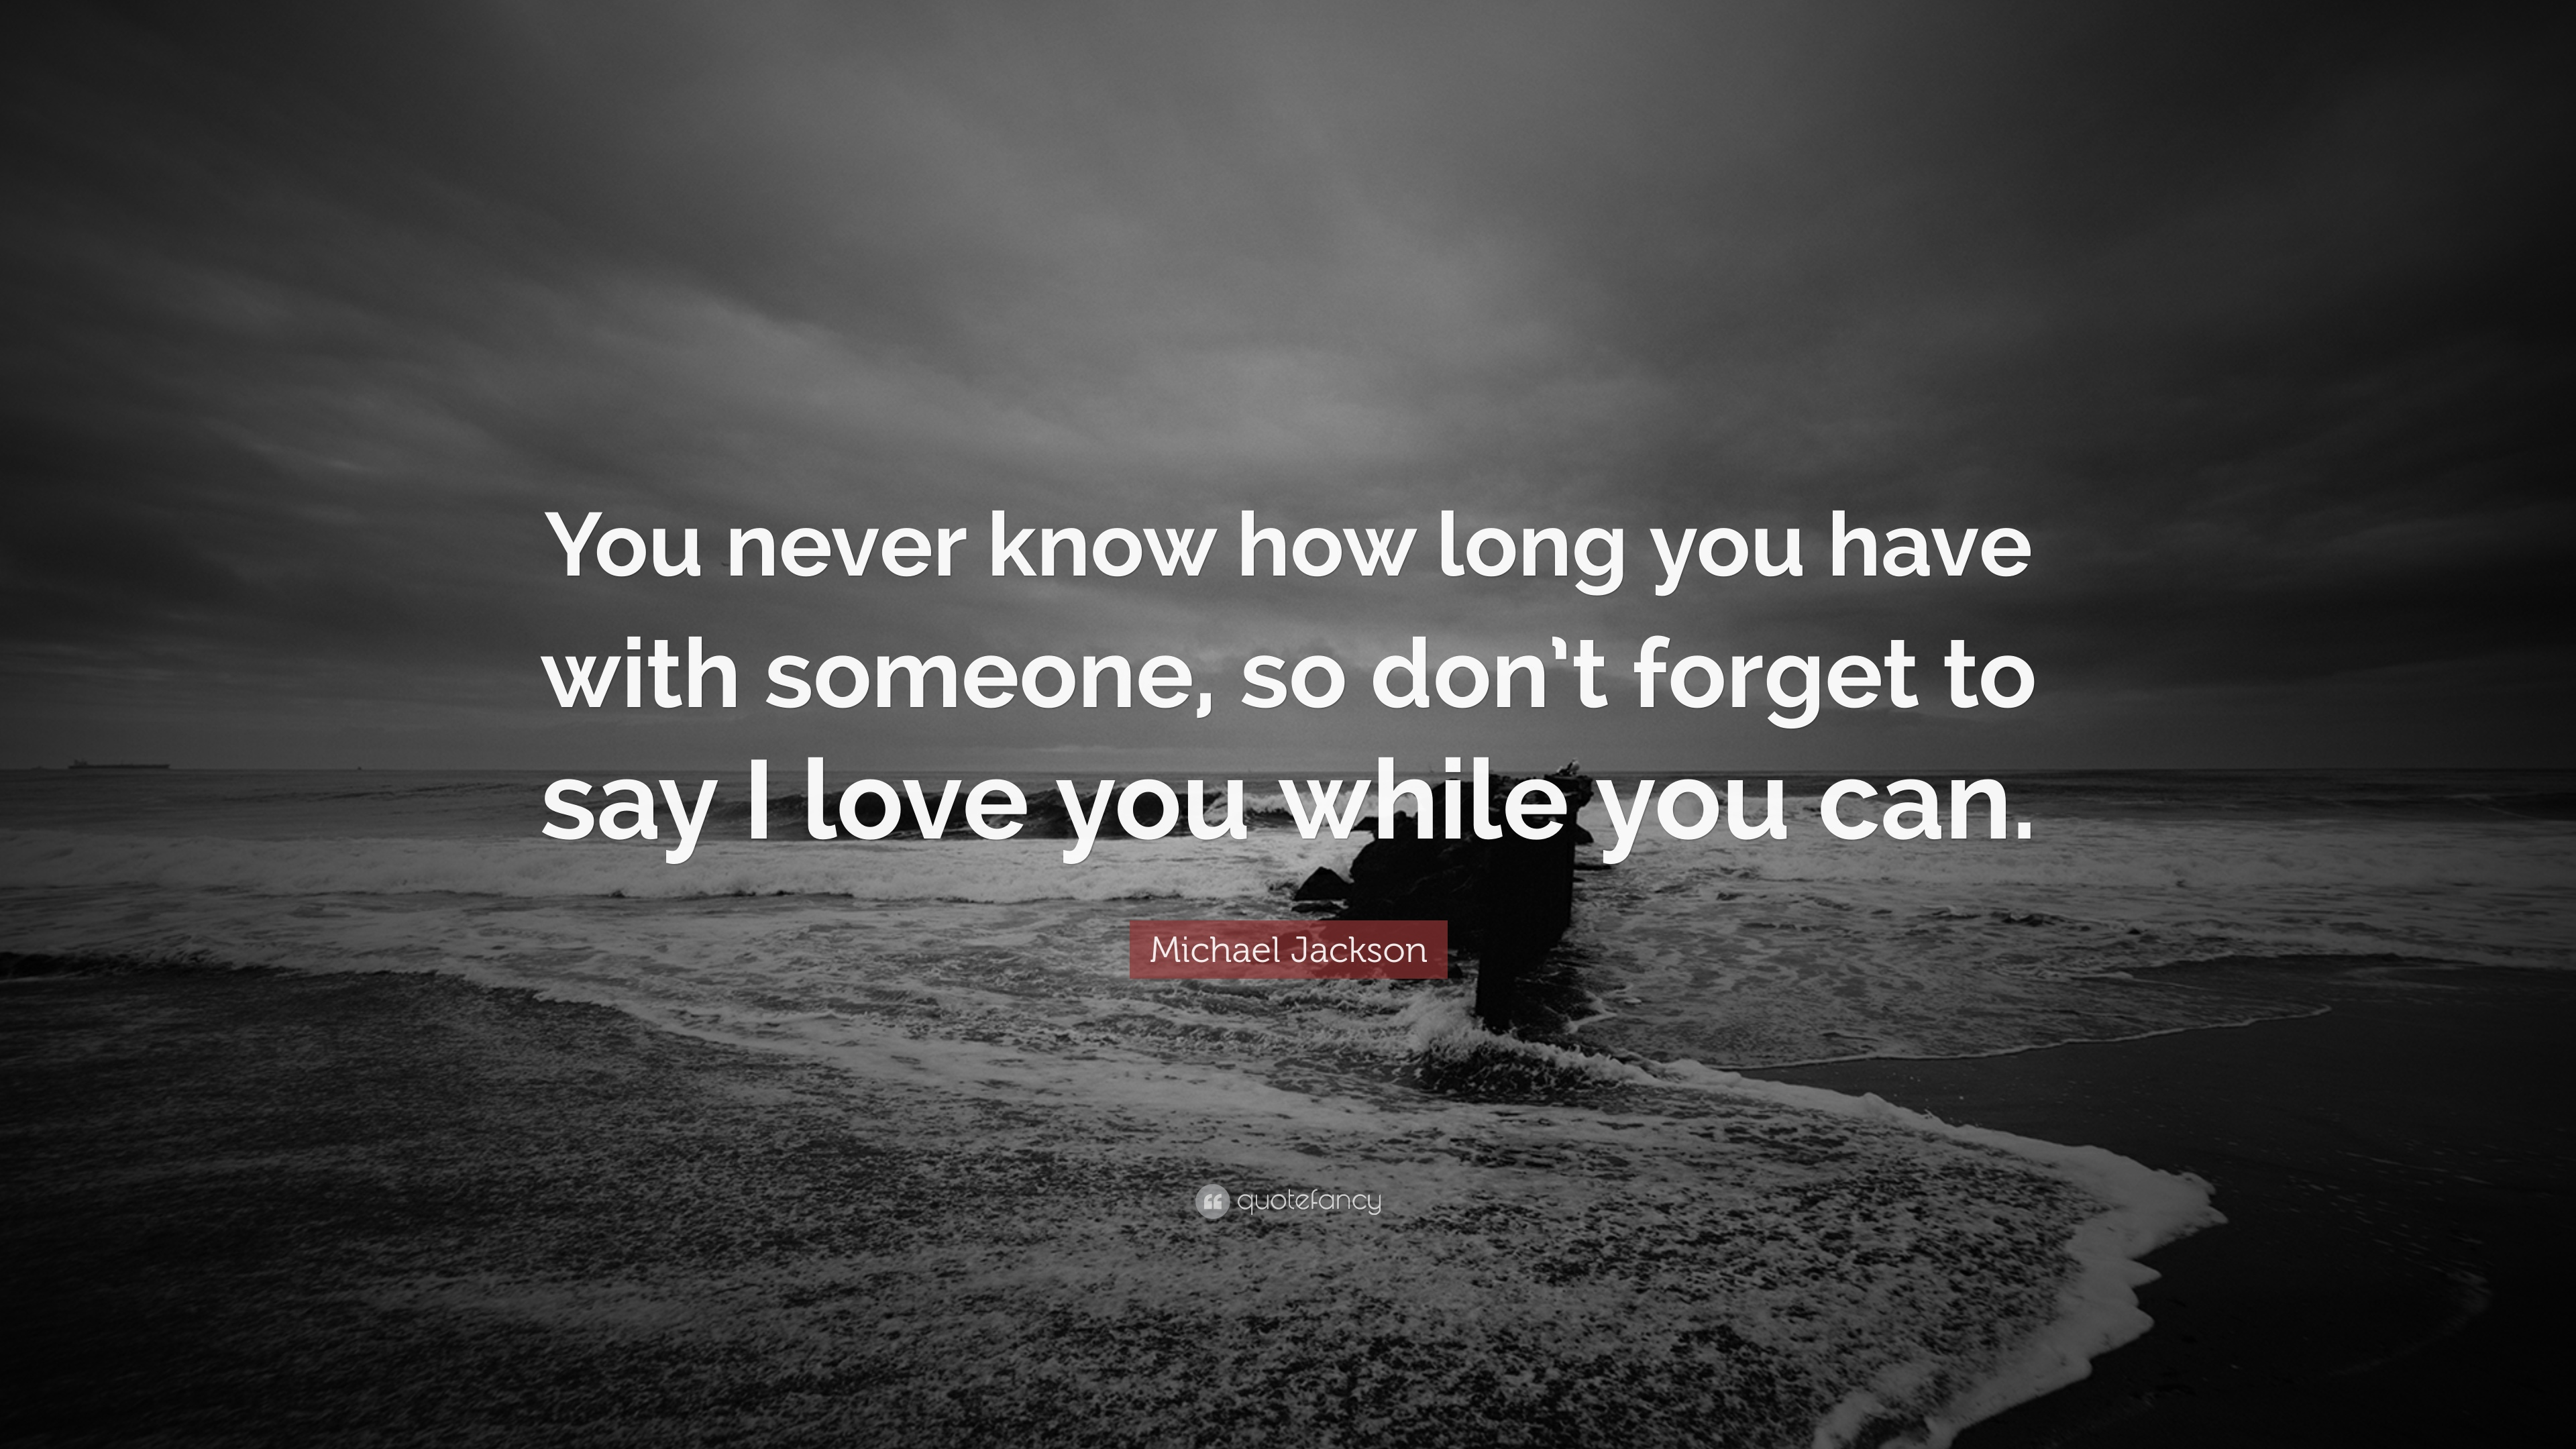 Michael Jackson Quote You Never Know How Long You Have With